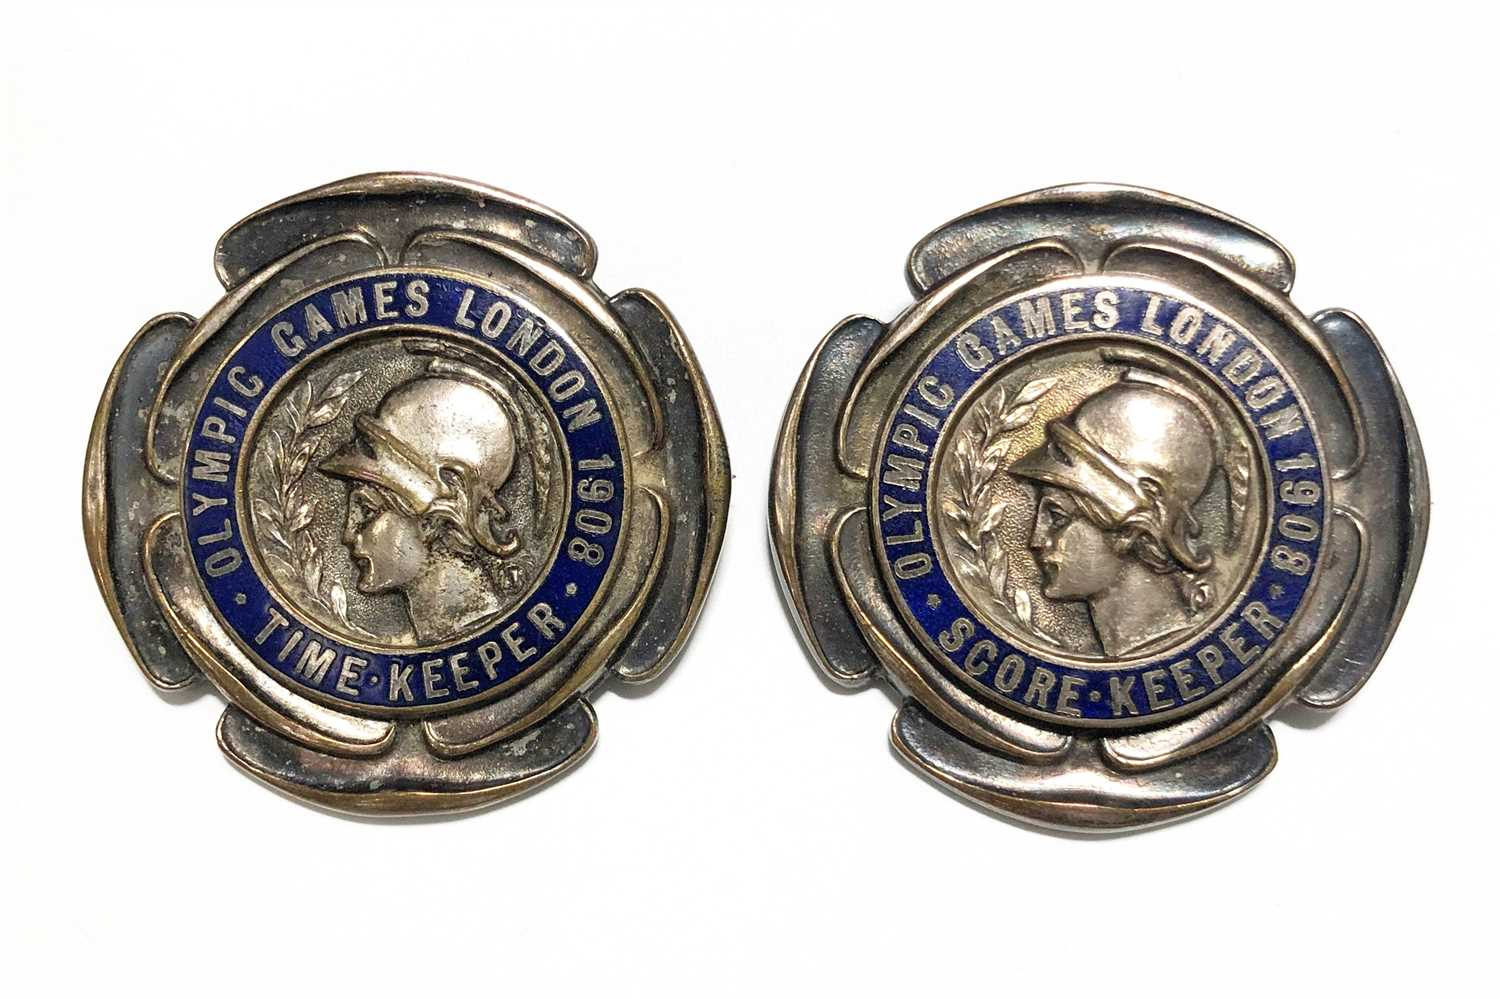 Lot 93-Olympic Interest: London 1908, a Time-Keeper's badge and Score-keeper's badge.